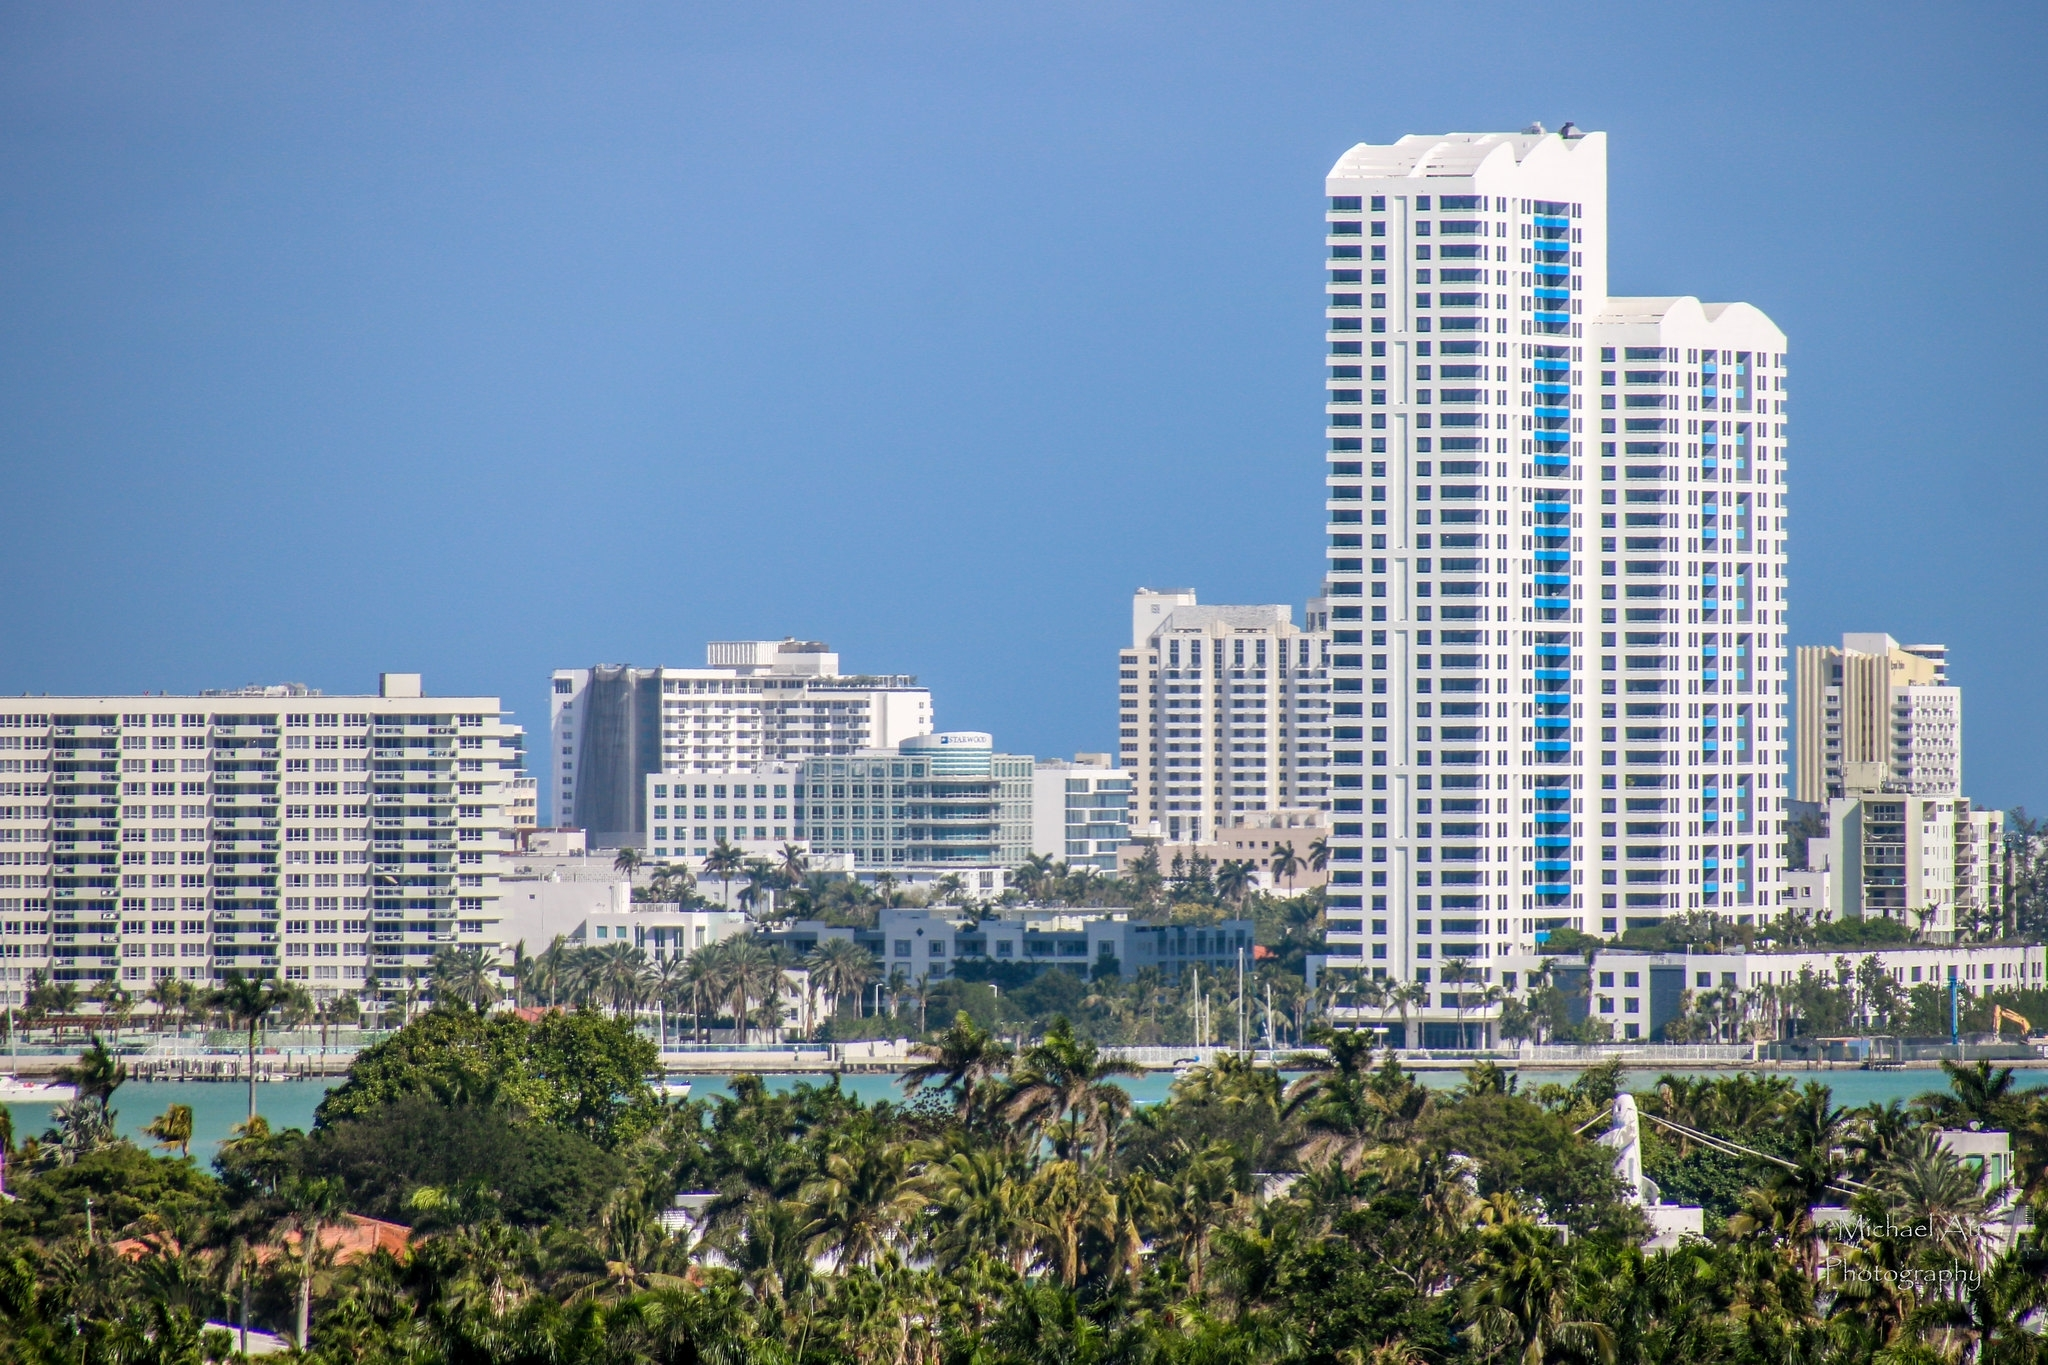 Hotel Rates In Miami And Miami Beach Skyrocket For Super pertaining to Super Bowl Miami Hotels